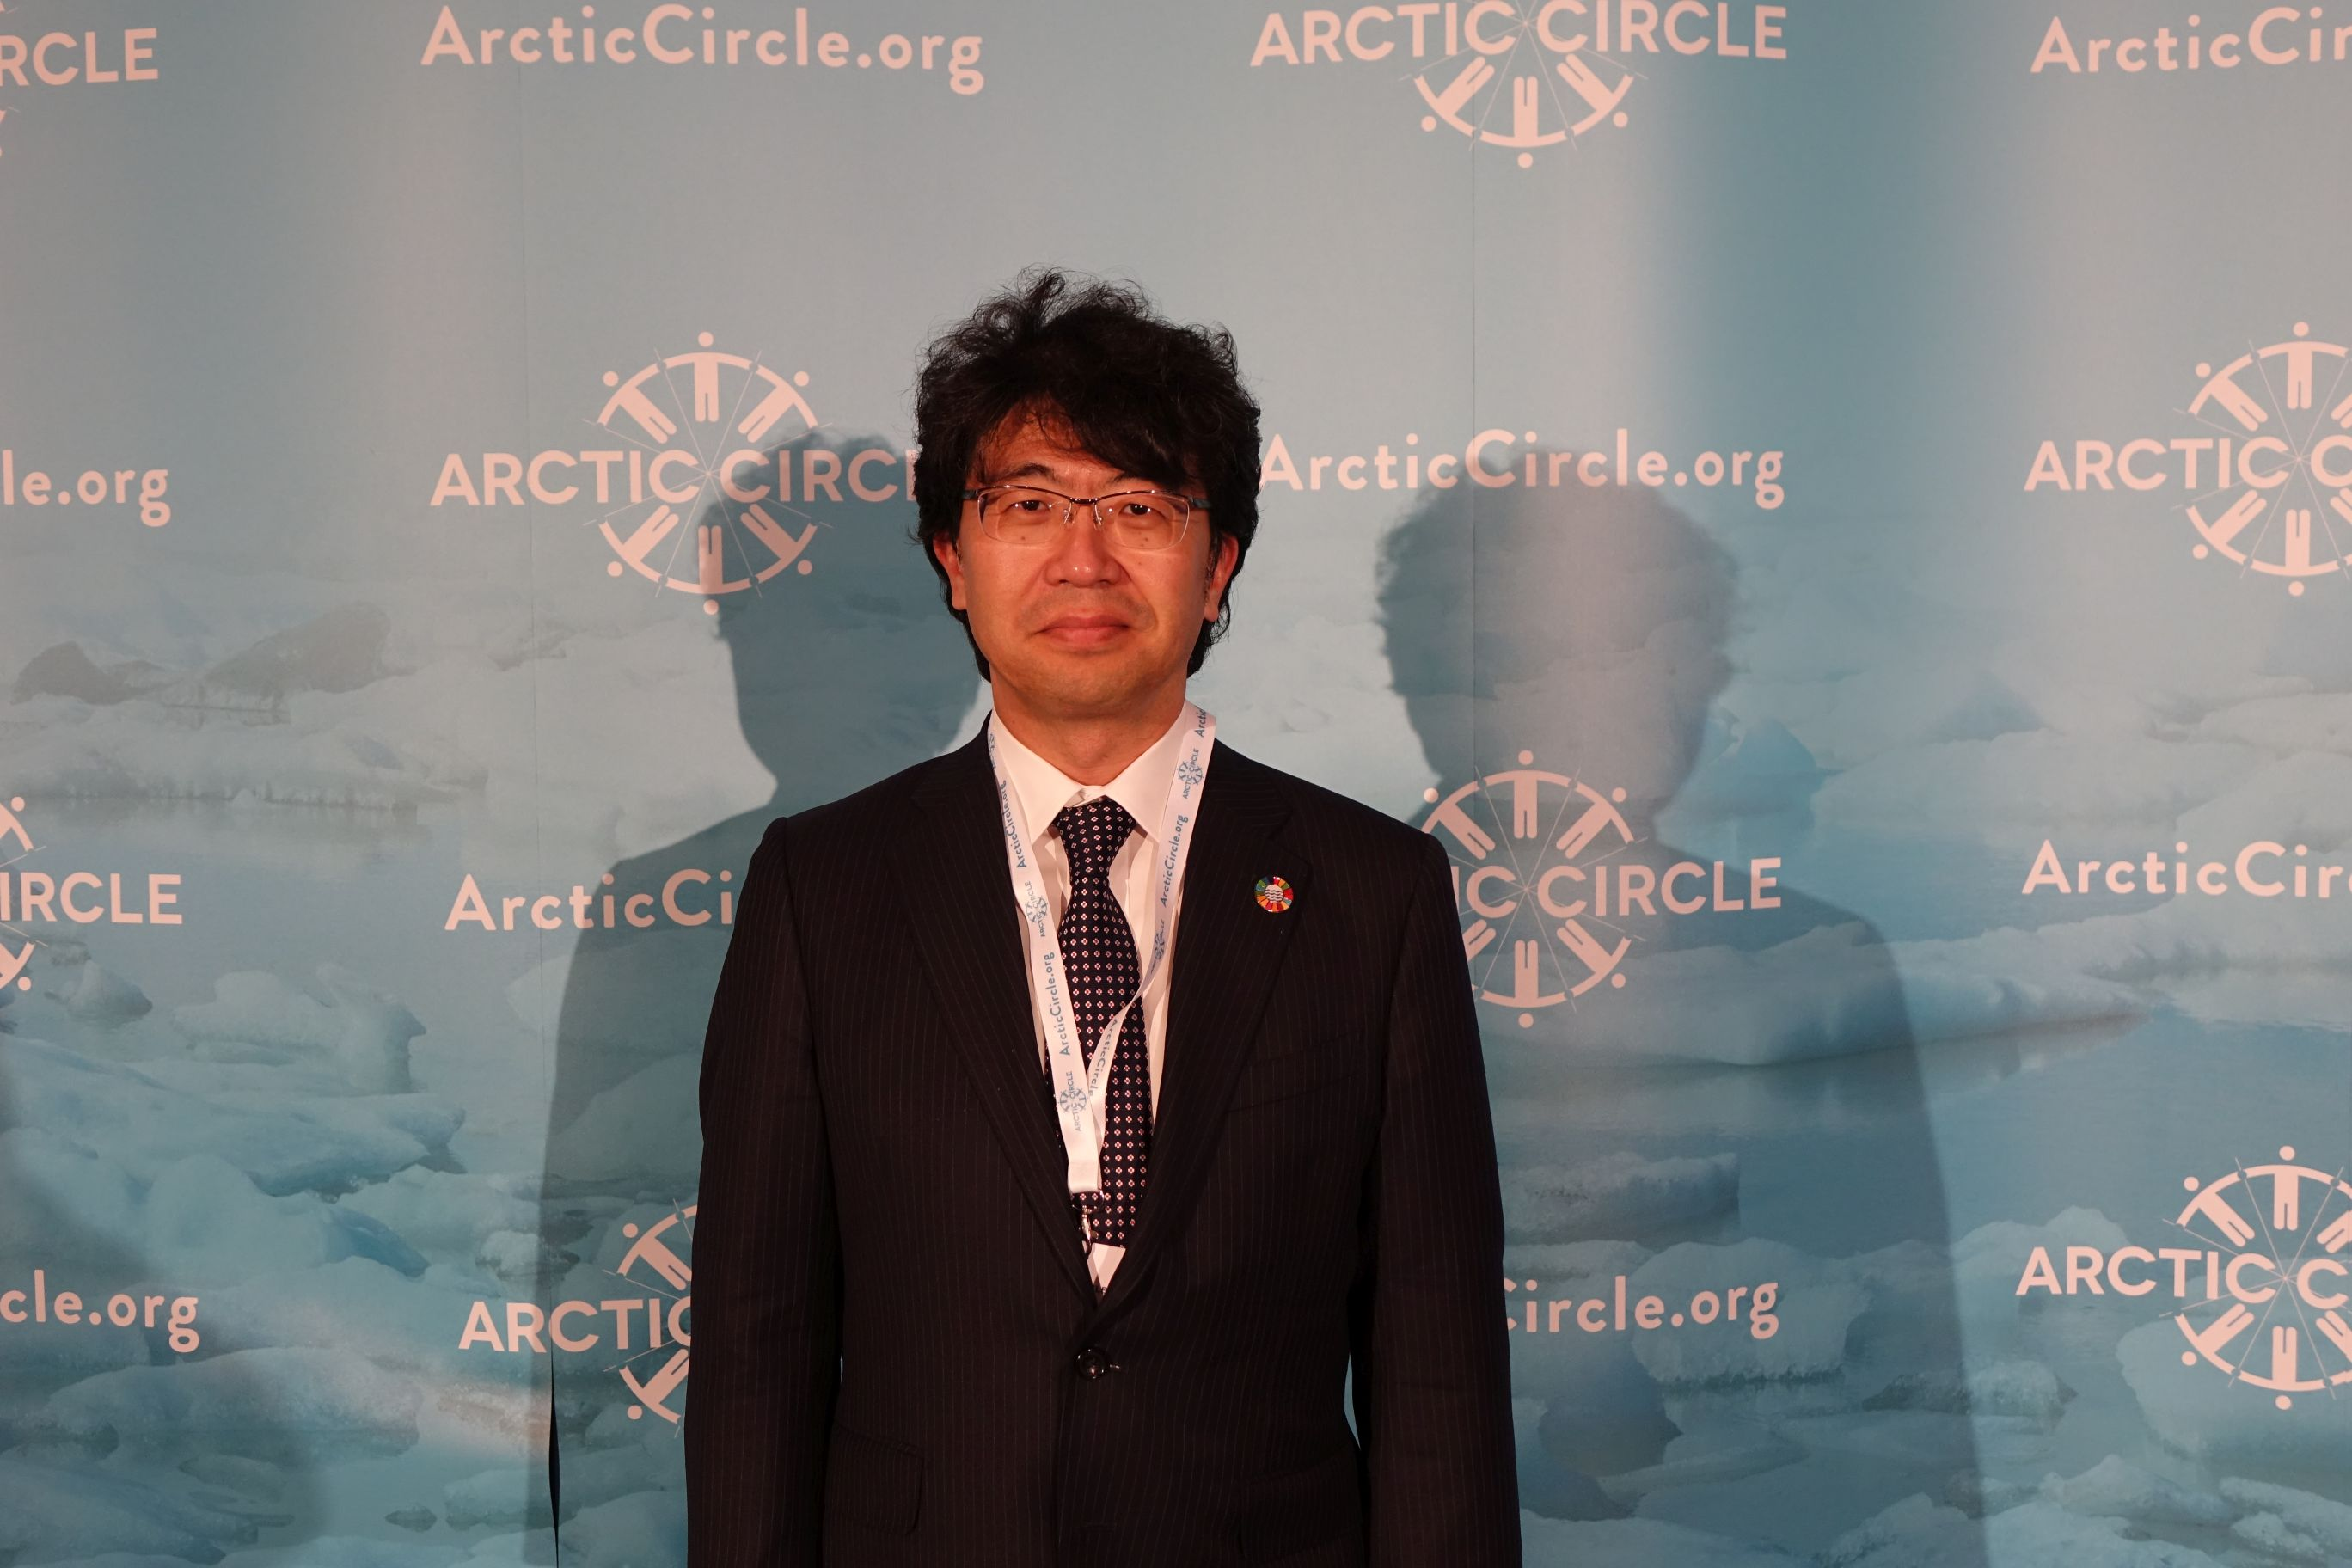 OPRI President Atsushi Sunami at the 2018 Arctic Circle Assembly, following his appointment to the Arctic Circle Advisory Board